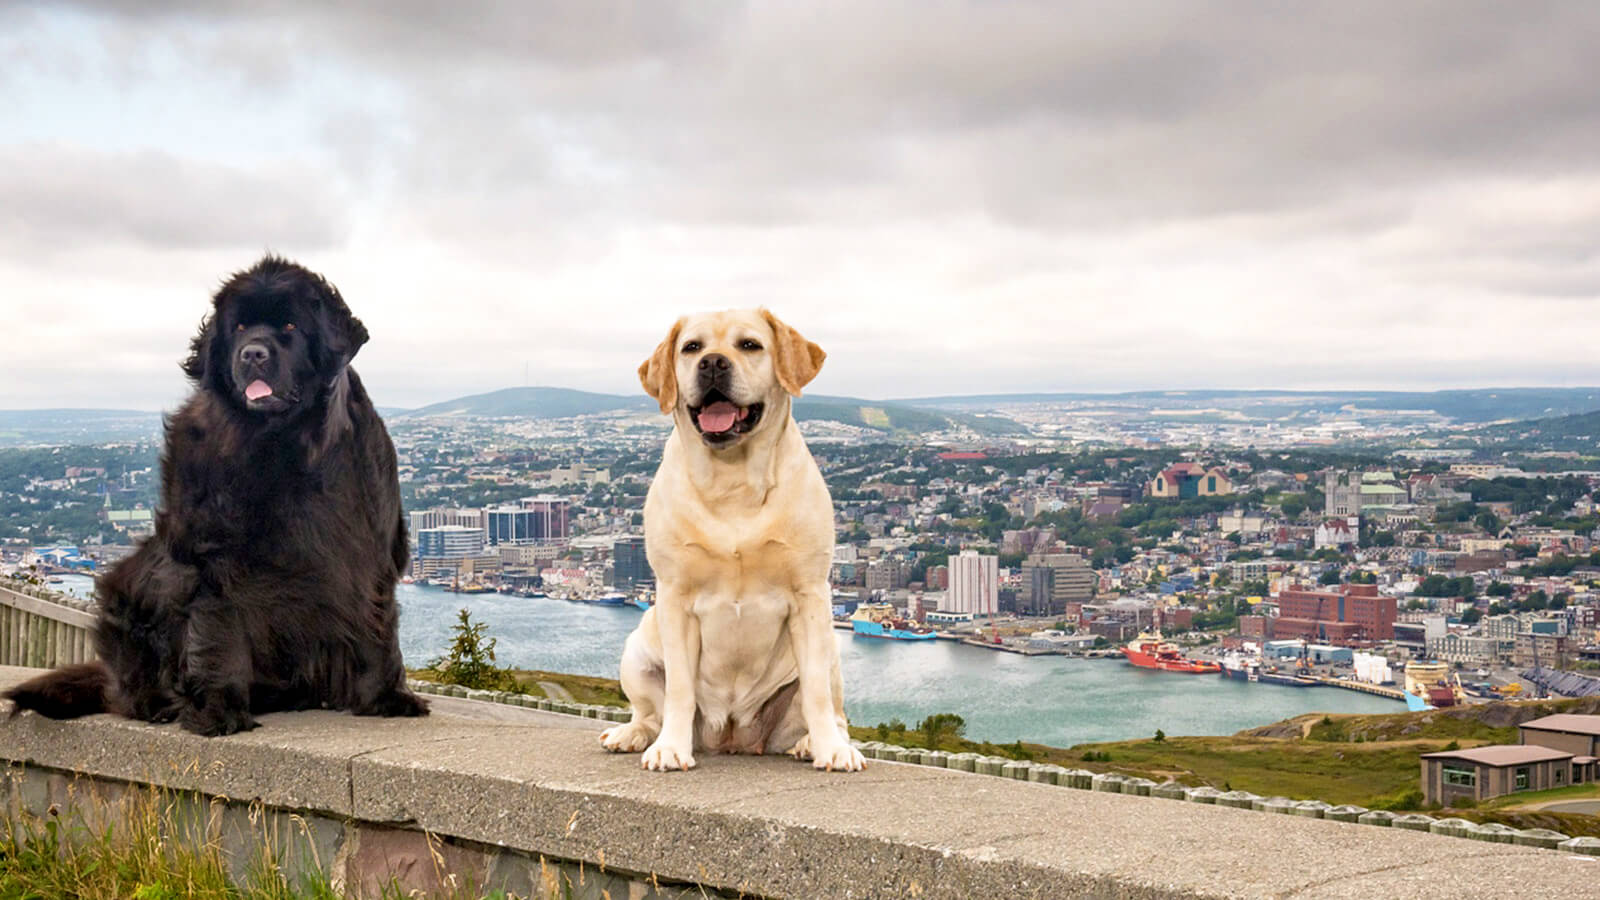 Pet Friendly Hotels in St. John's - image